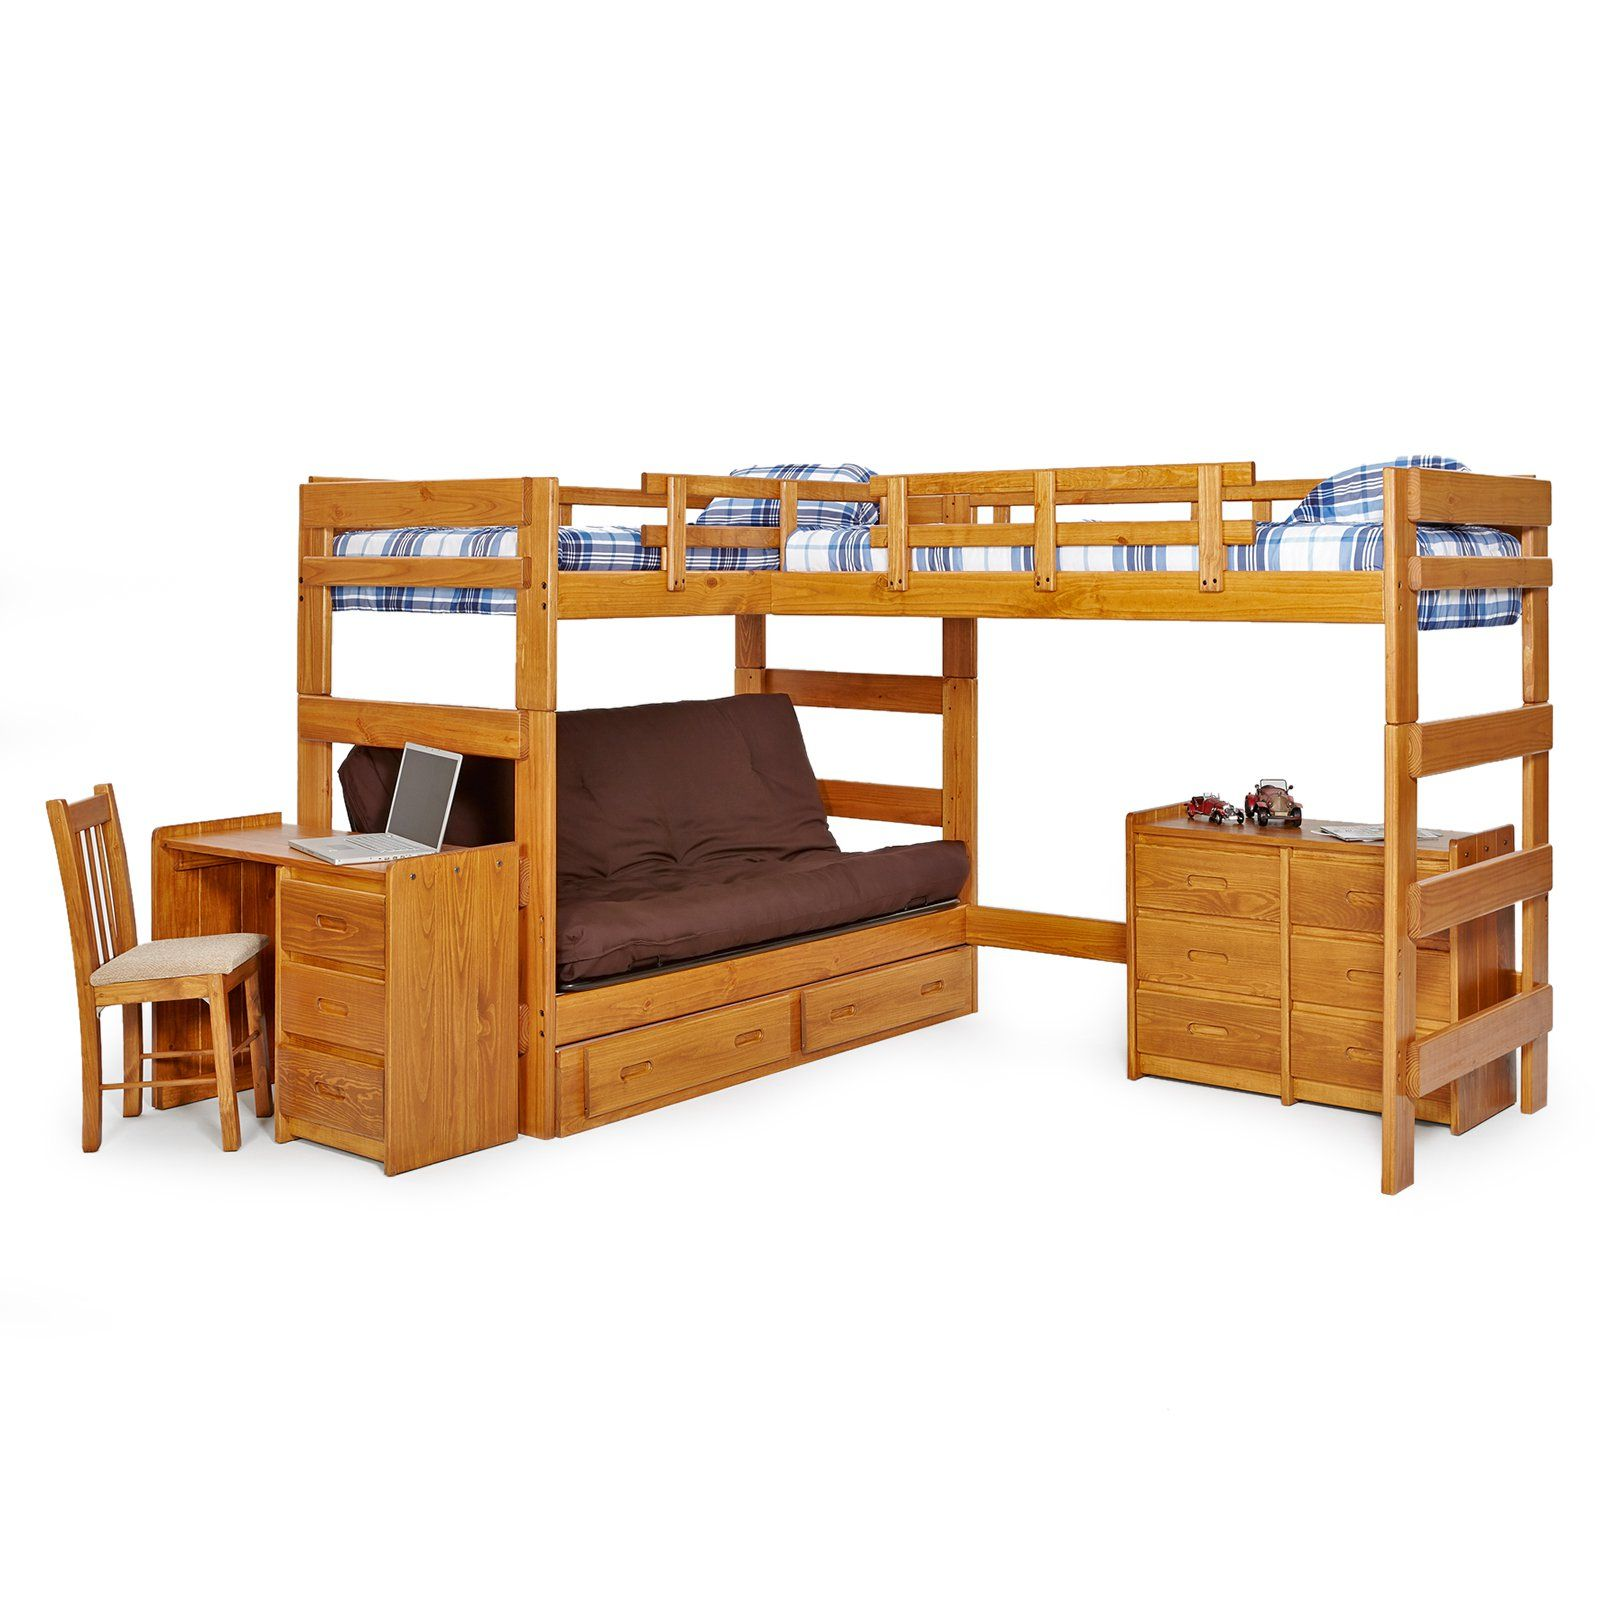 Double loft bed with desk  Pin by Kensey Lyons on Kid Stuff  Pinterest  Futon bunk bed Bunk